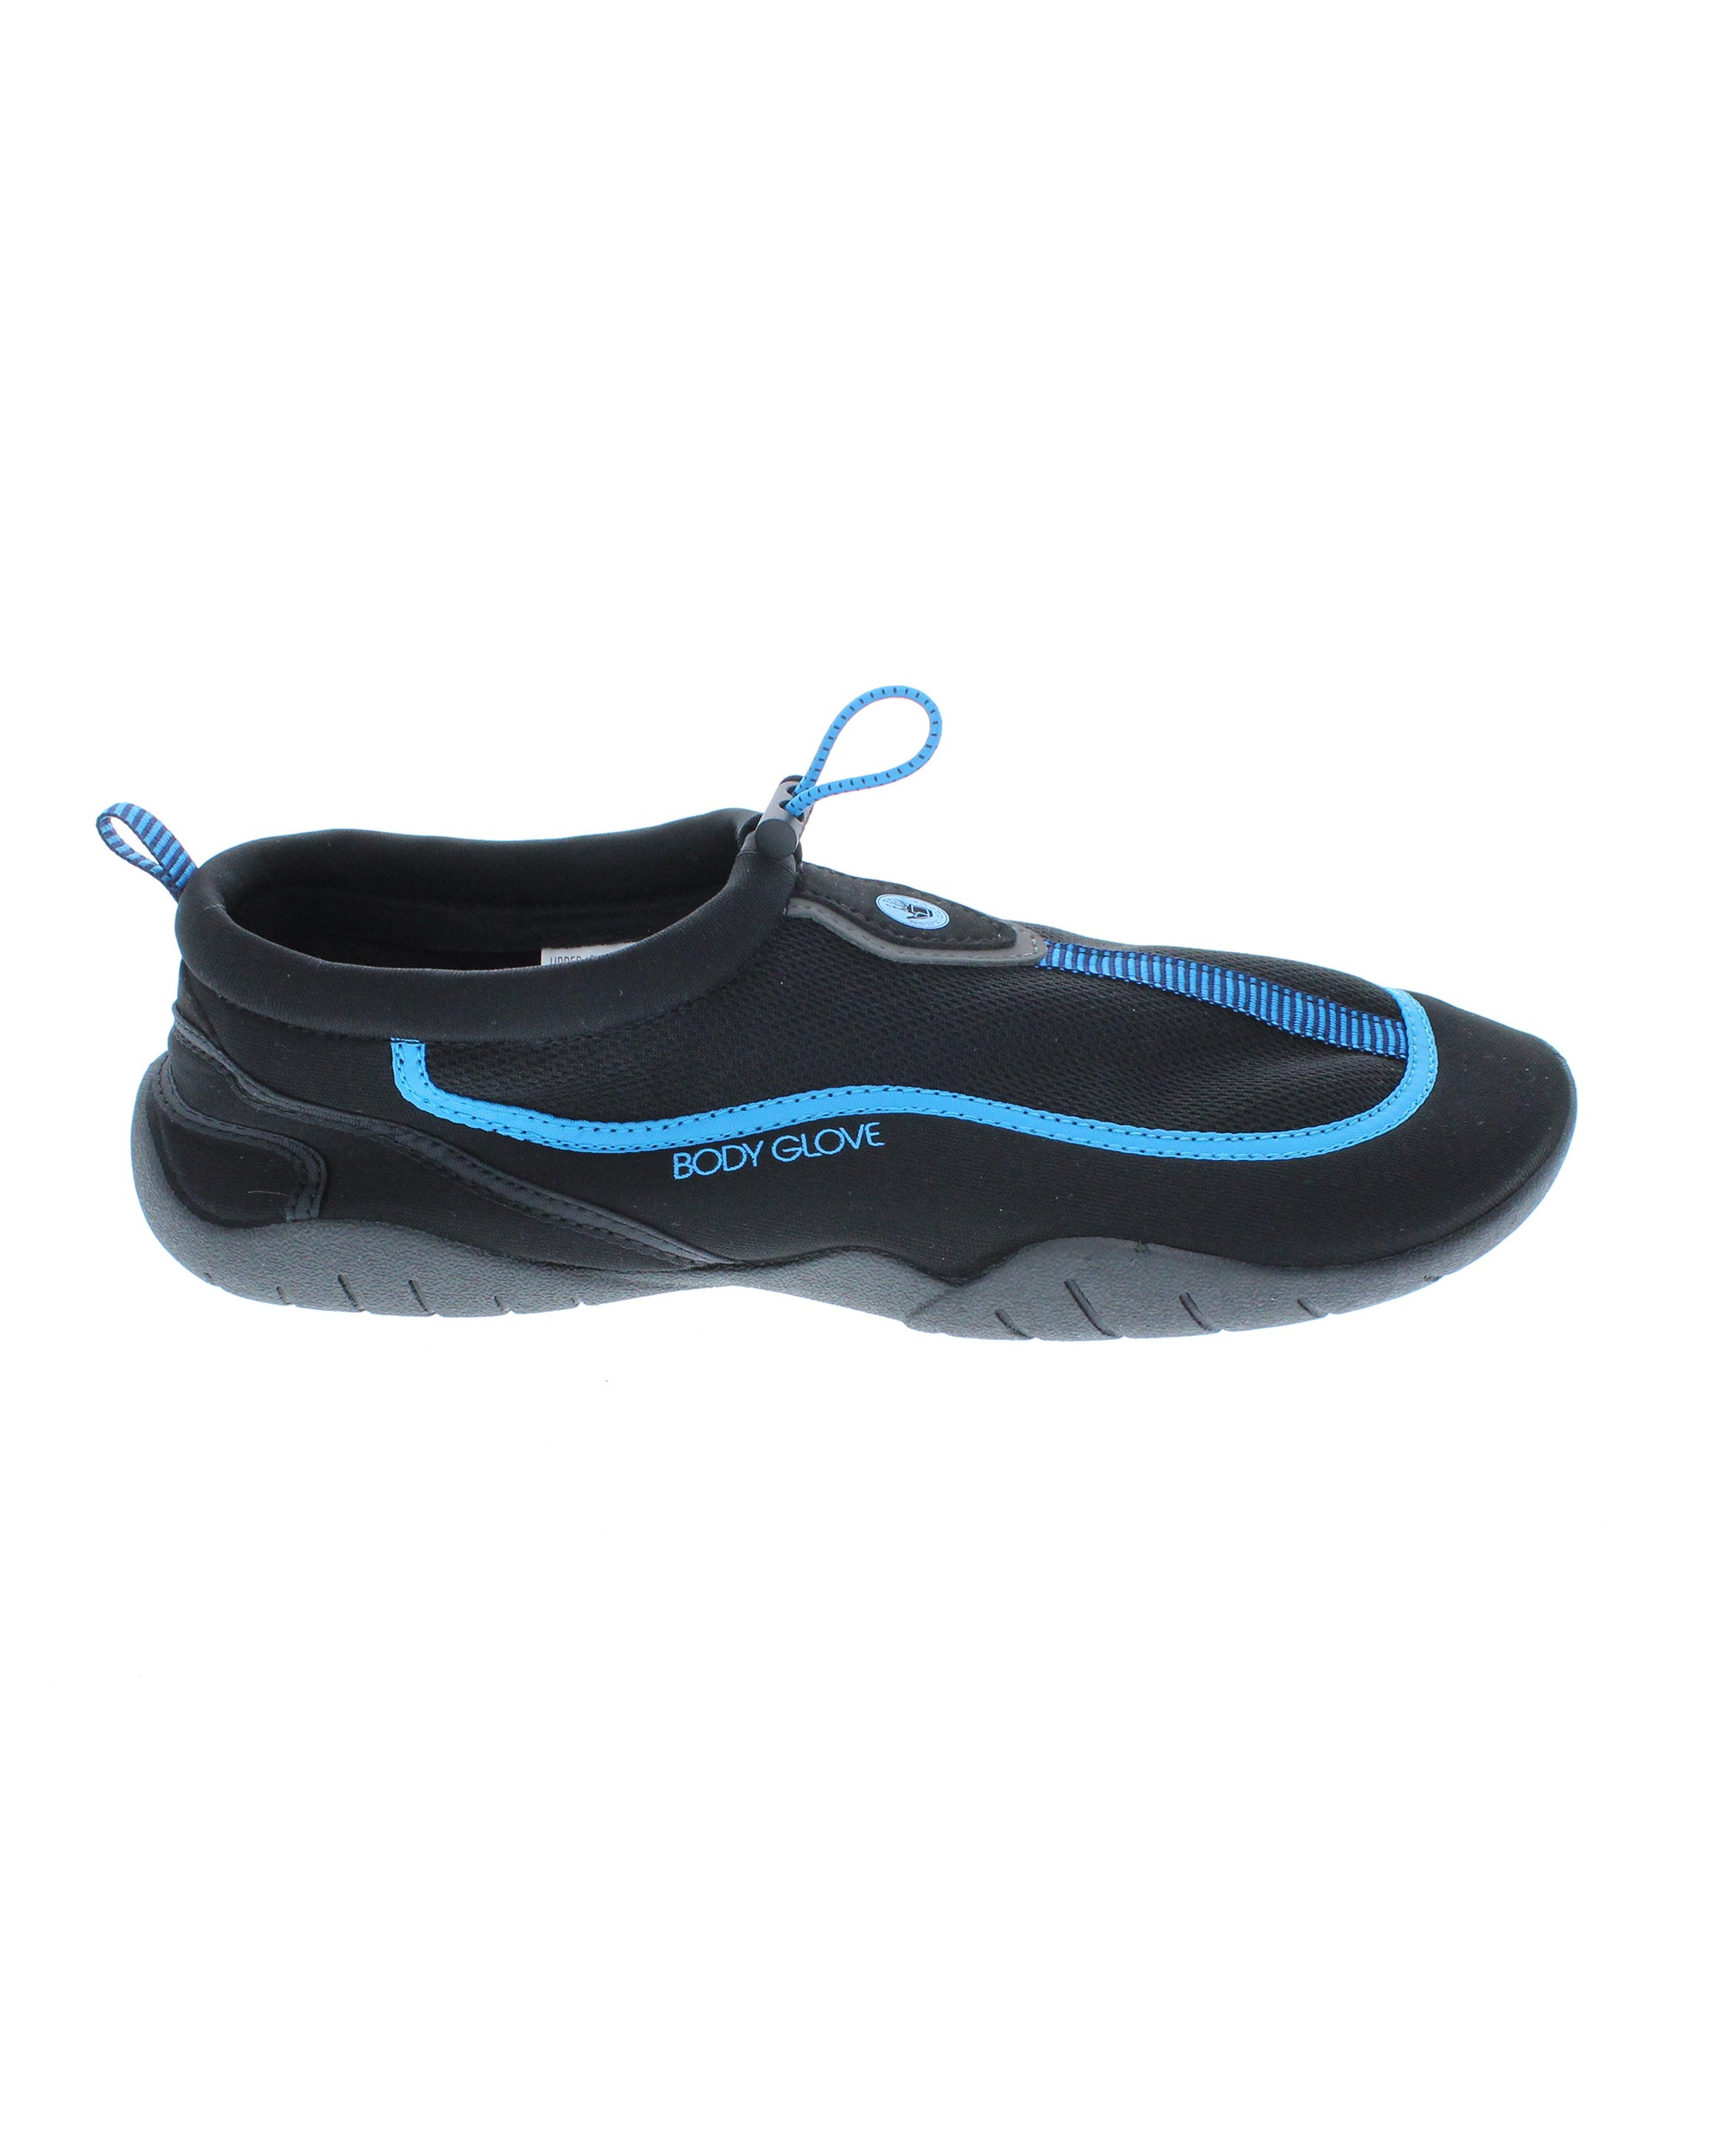 Men's Riptide III Water Shoes - Black/Royal